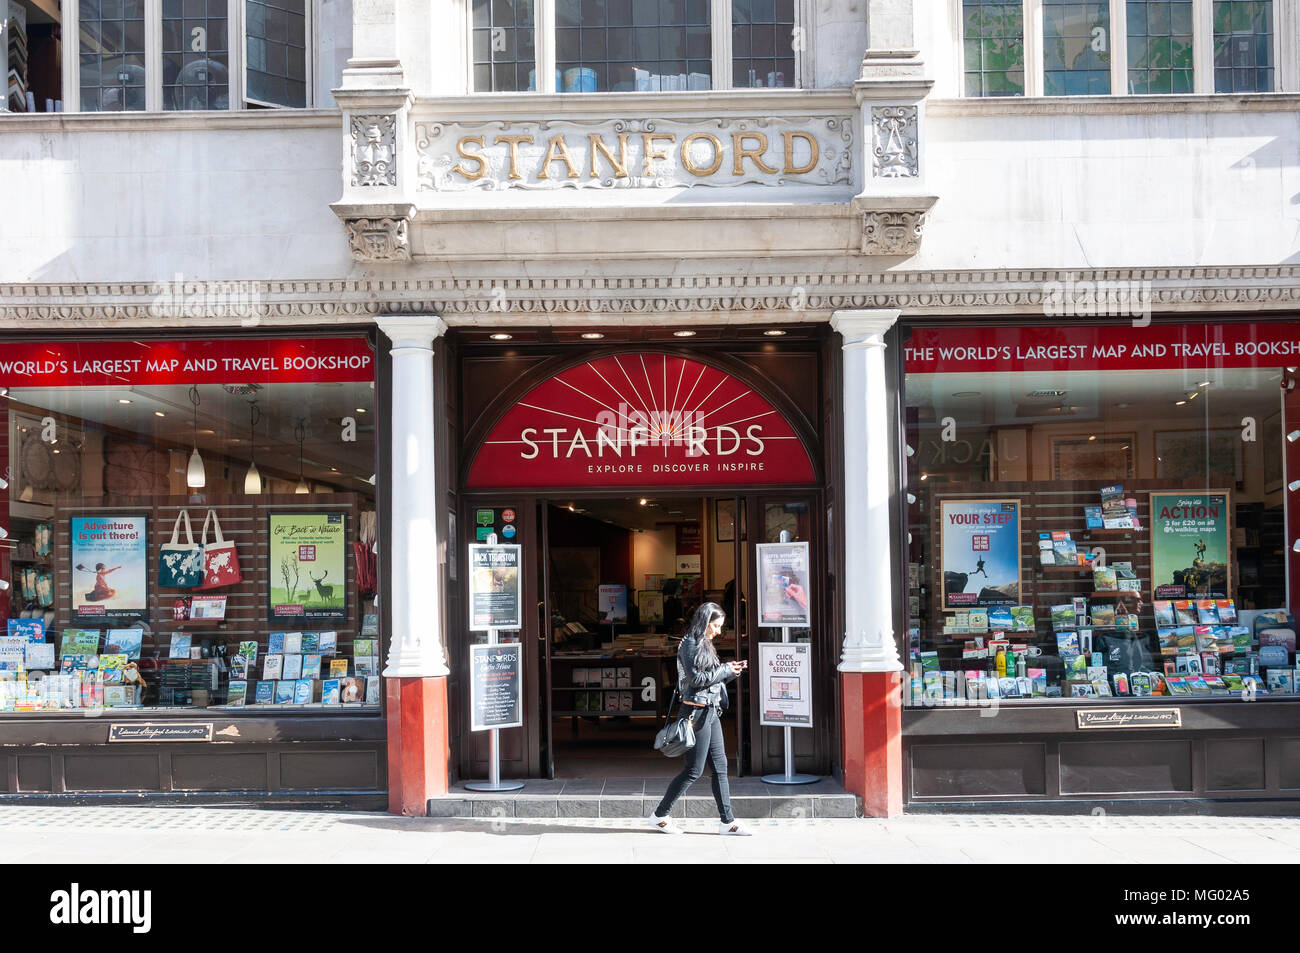 Stanfords Reise Buchhandlung, Long Acre, Covent Garden, Westminster, London, England, Vereinigtes Königreich Stockbild